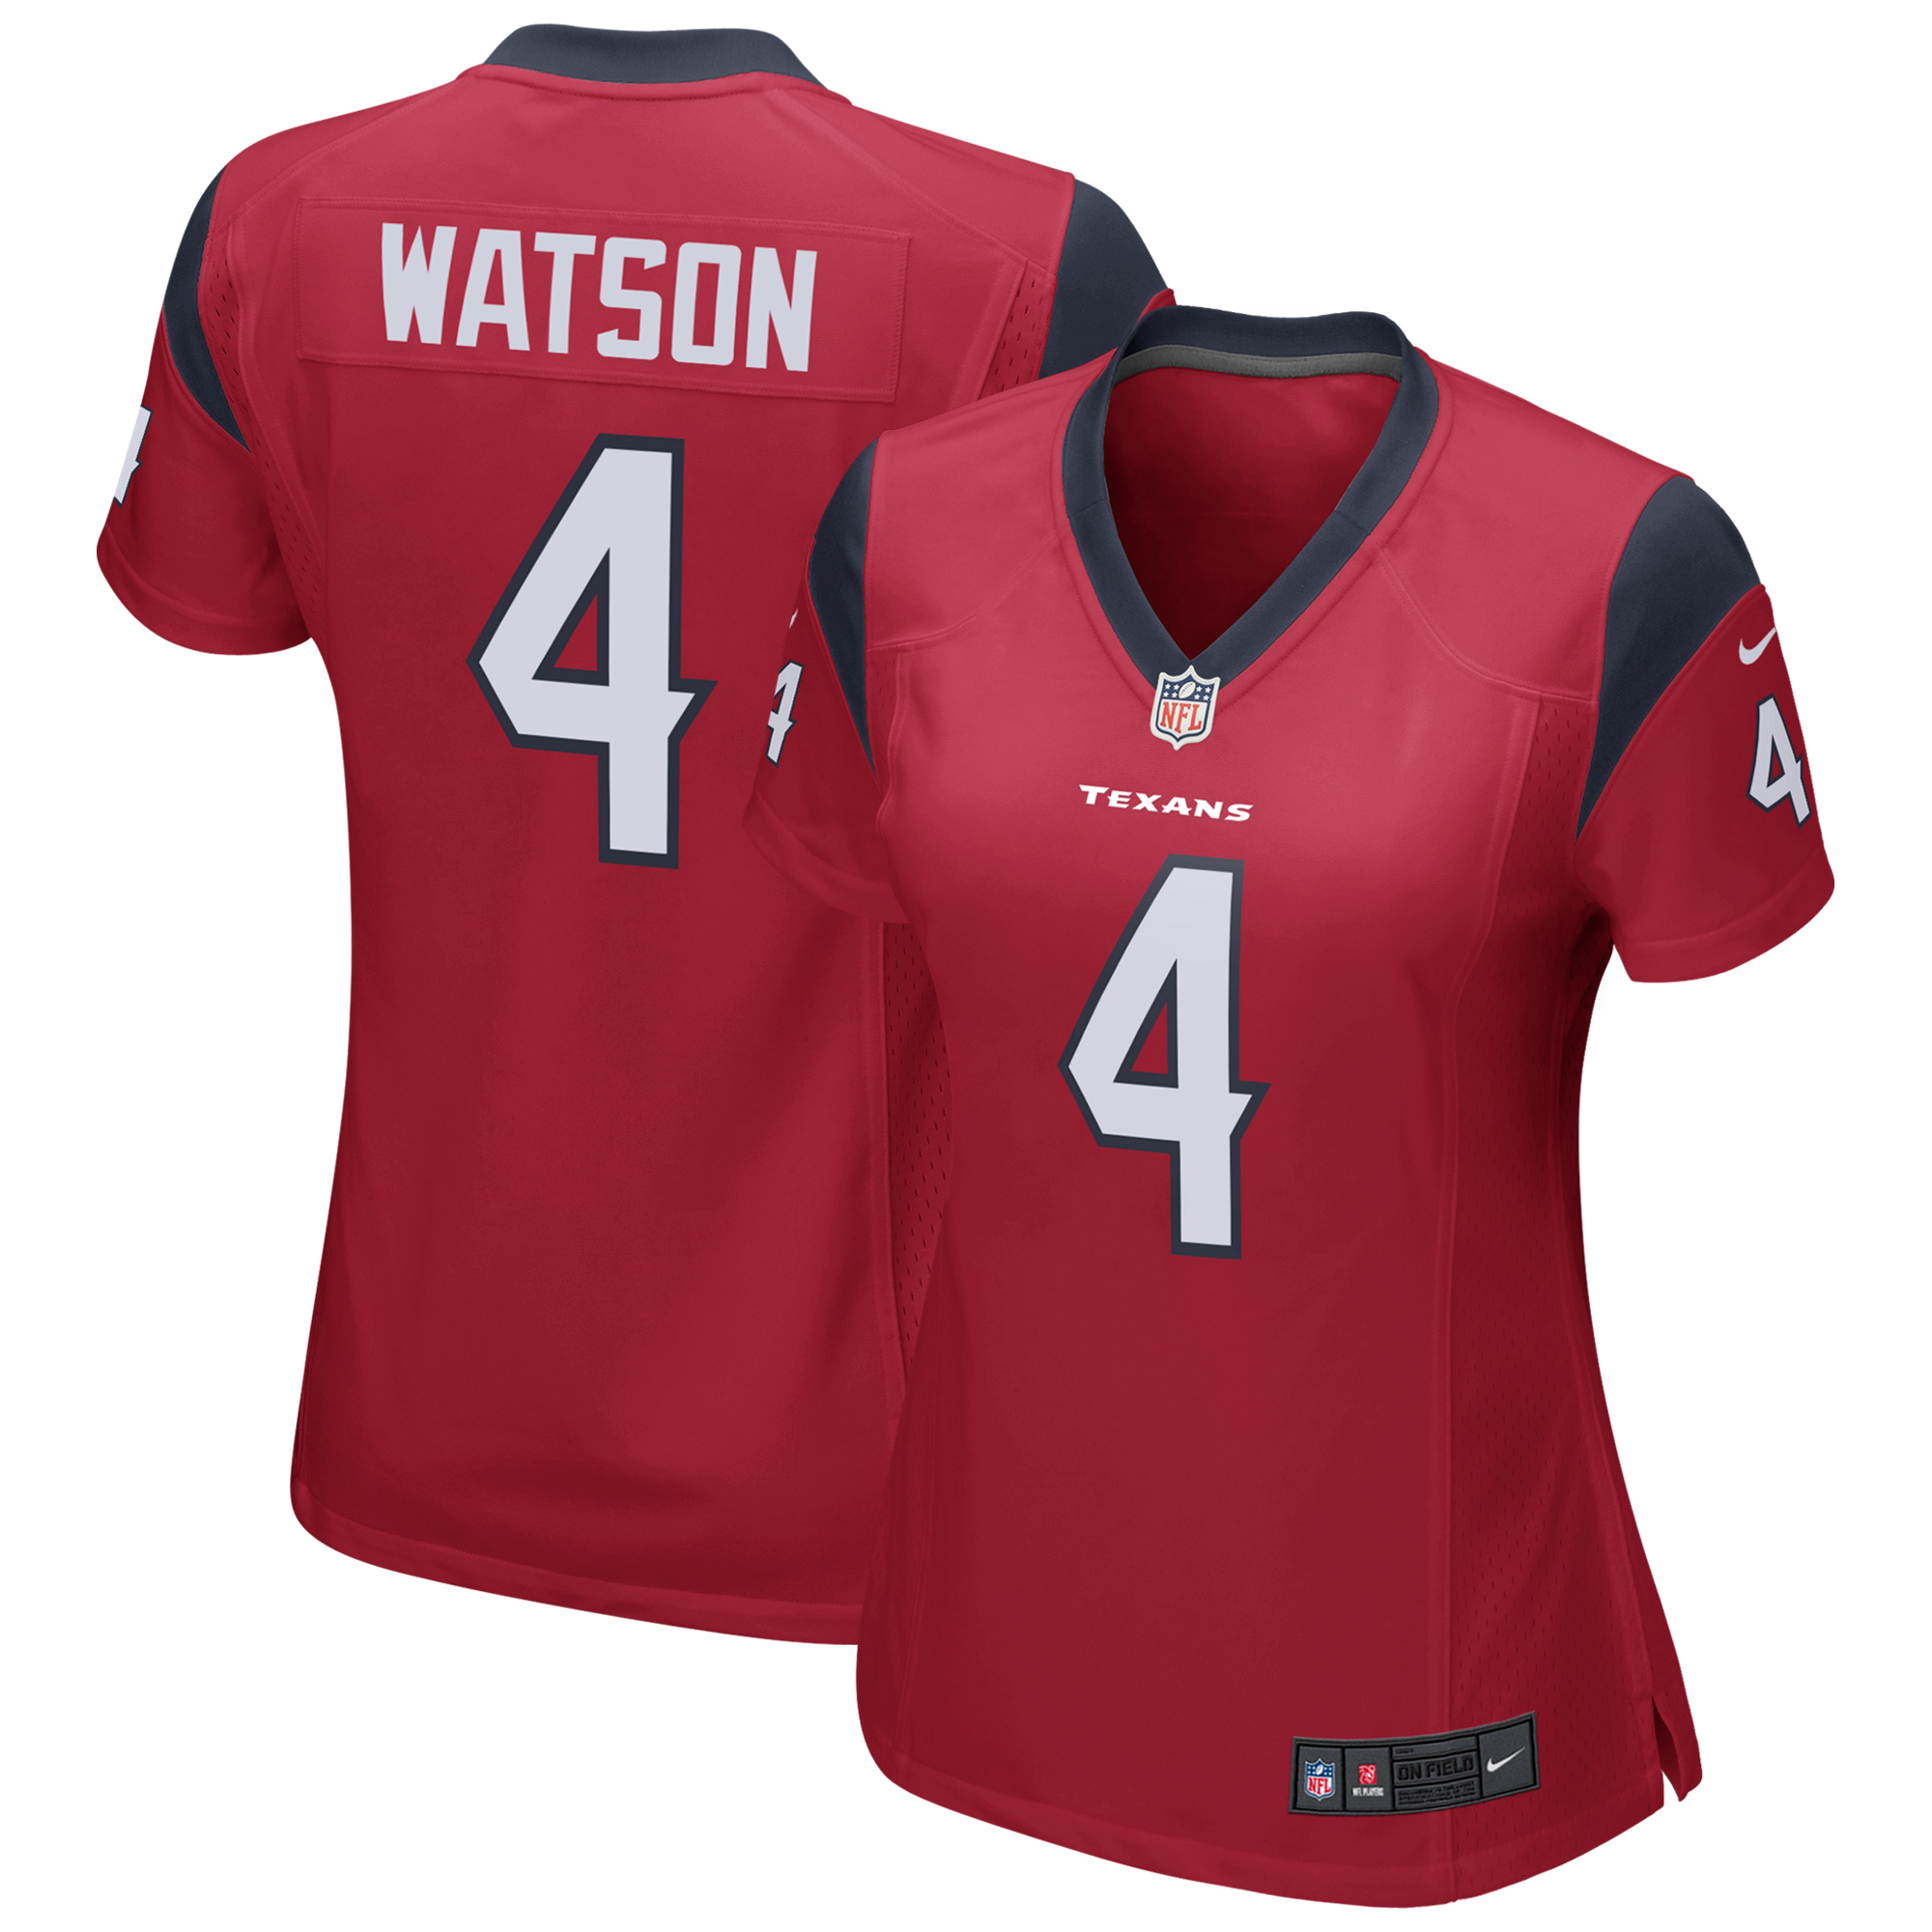 finest selection 8ba06 a9905 texans gear at walmart